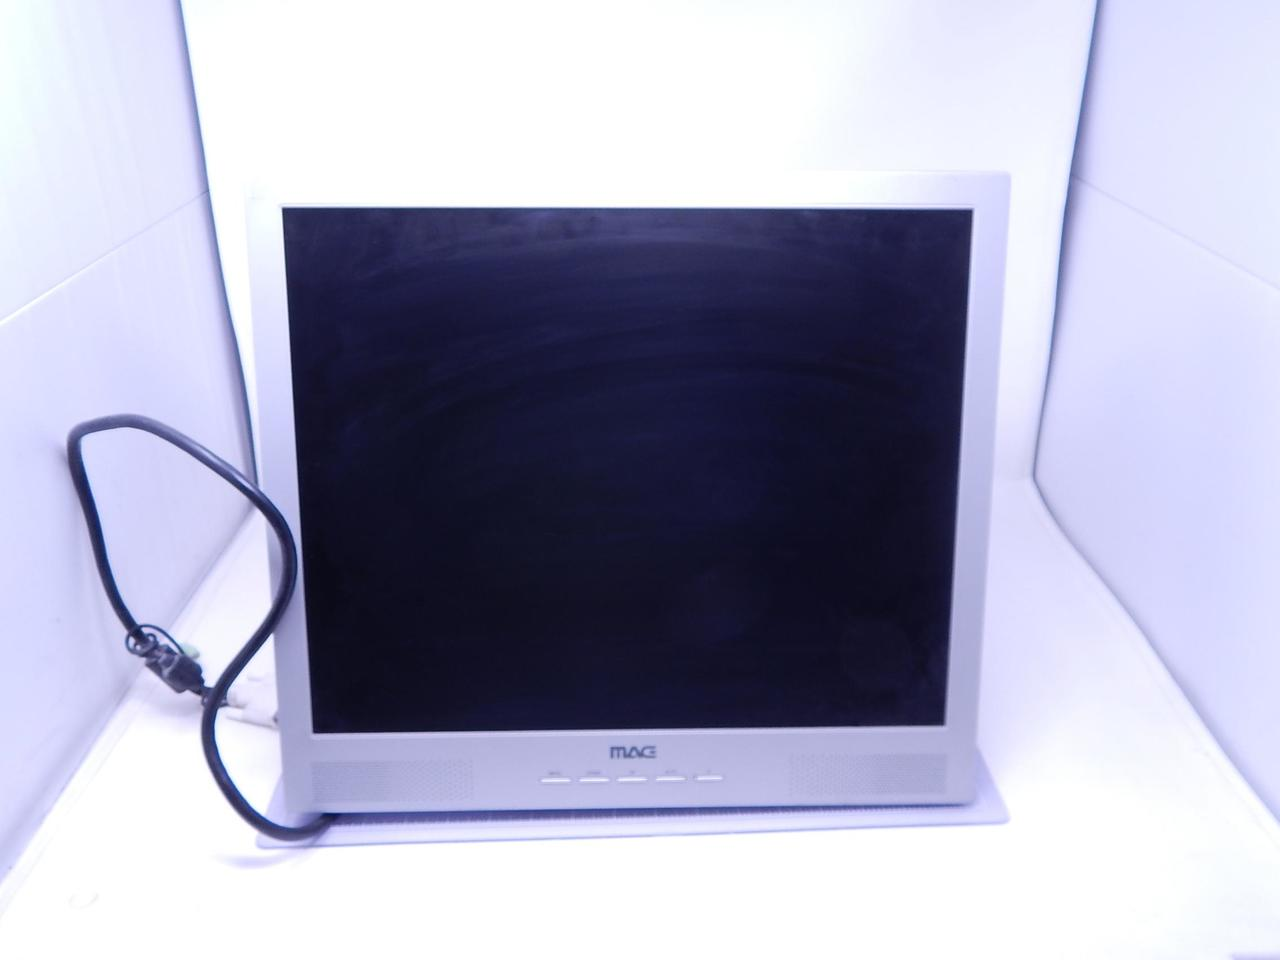 MAG 900P Computer Monitor T113900 For Sale